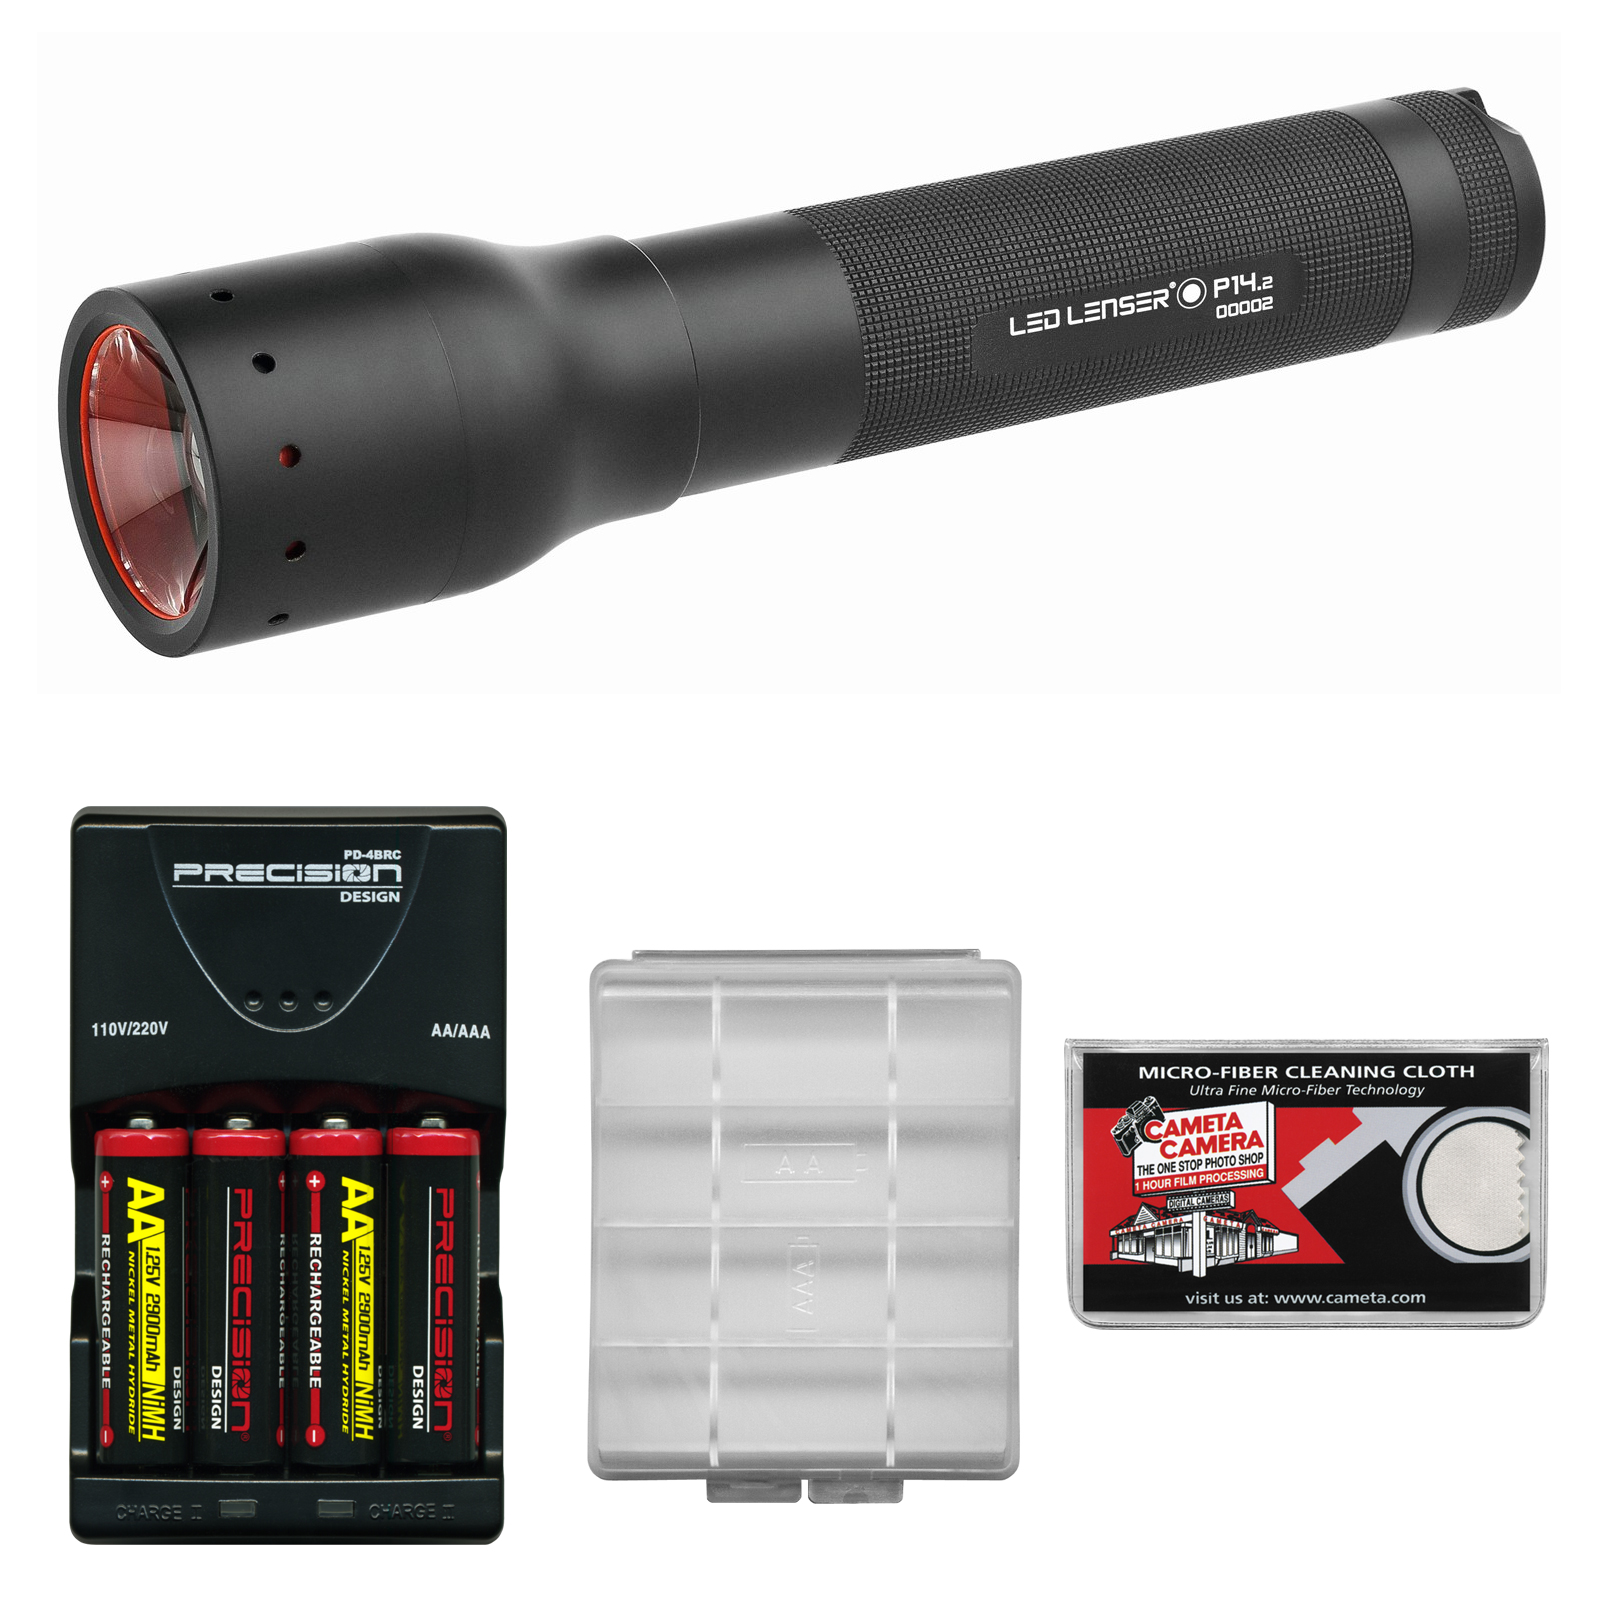 LED Lenser P14.2 350 Lumens Flashlight with Carrying Case with 4 AA Rechargeable Batteries + Charger + Battery Case + Cleaning Cloth